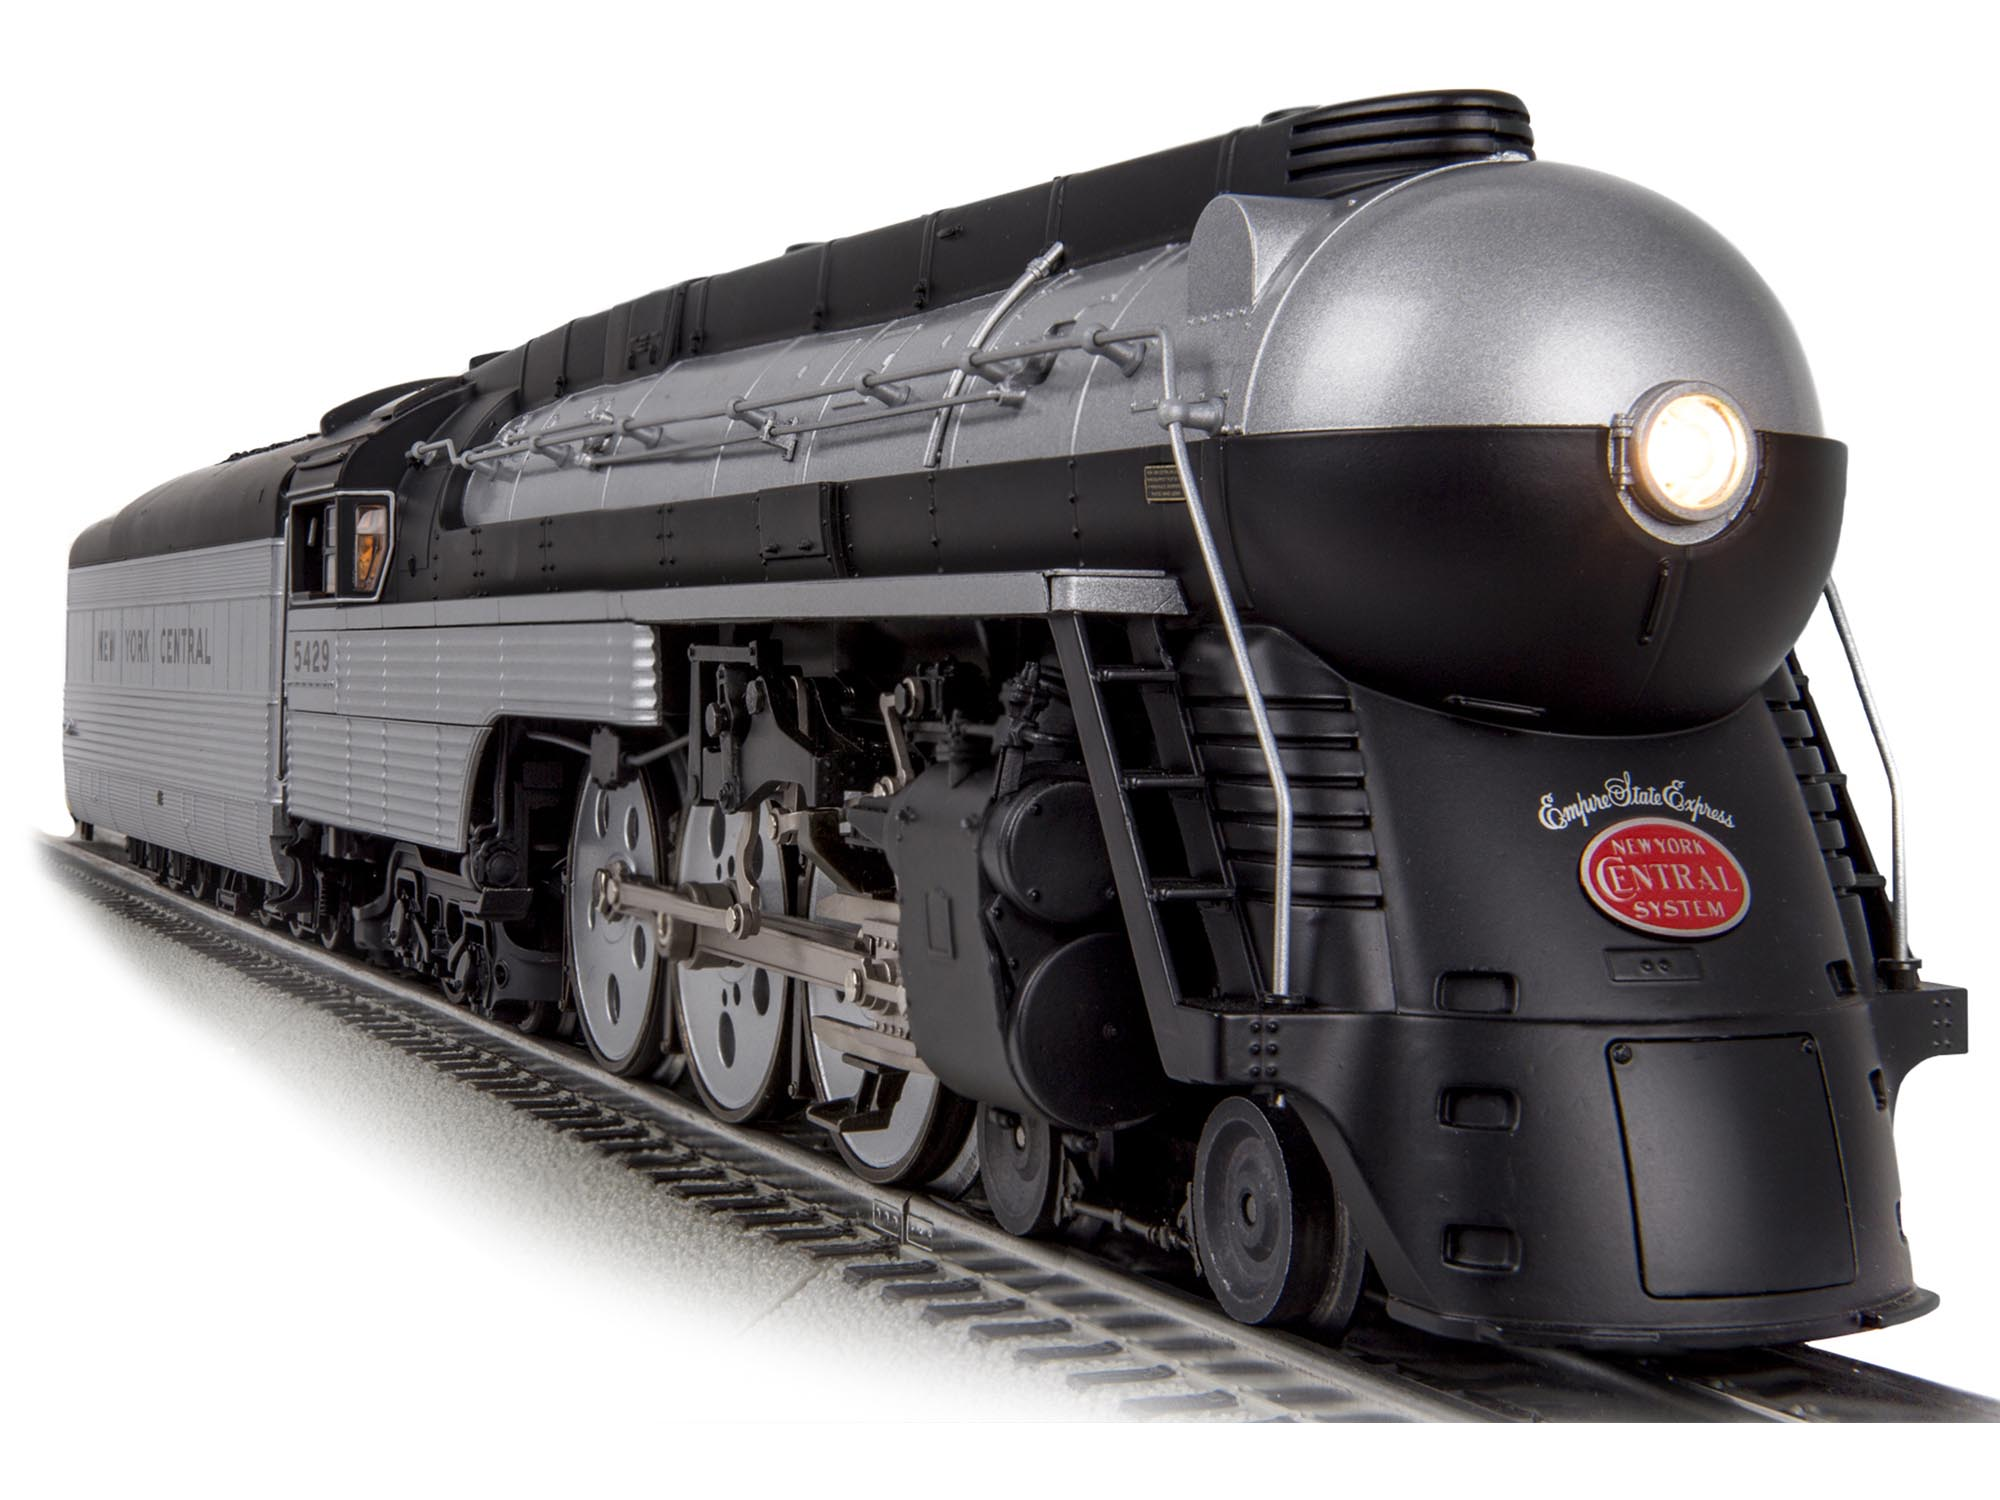 Scale steam locomotives for sale n scale steam locomotives - Scale Steam Locomotives For Sale N Scale Steam Locomotives 52